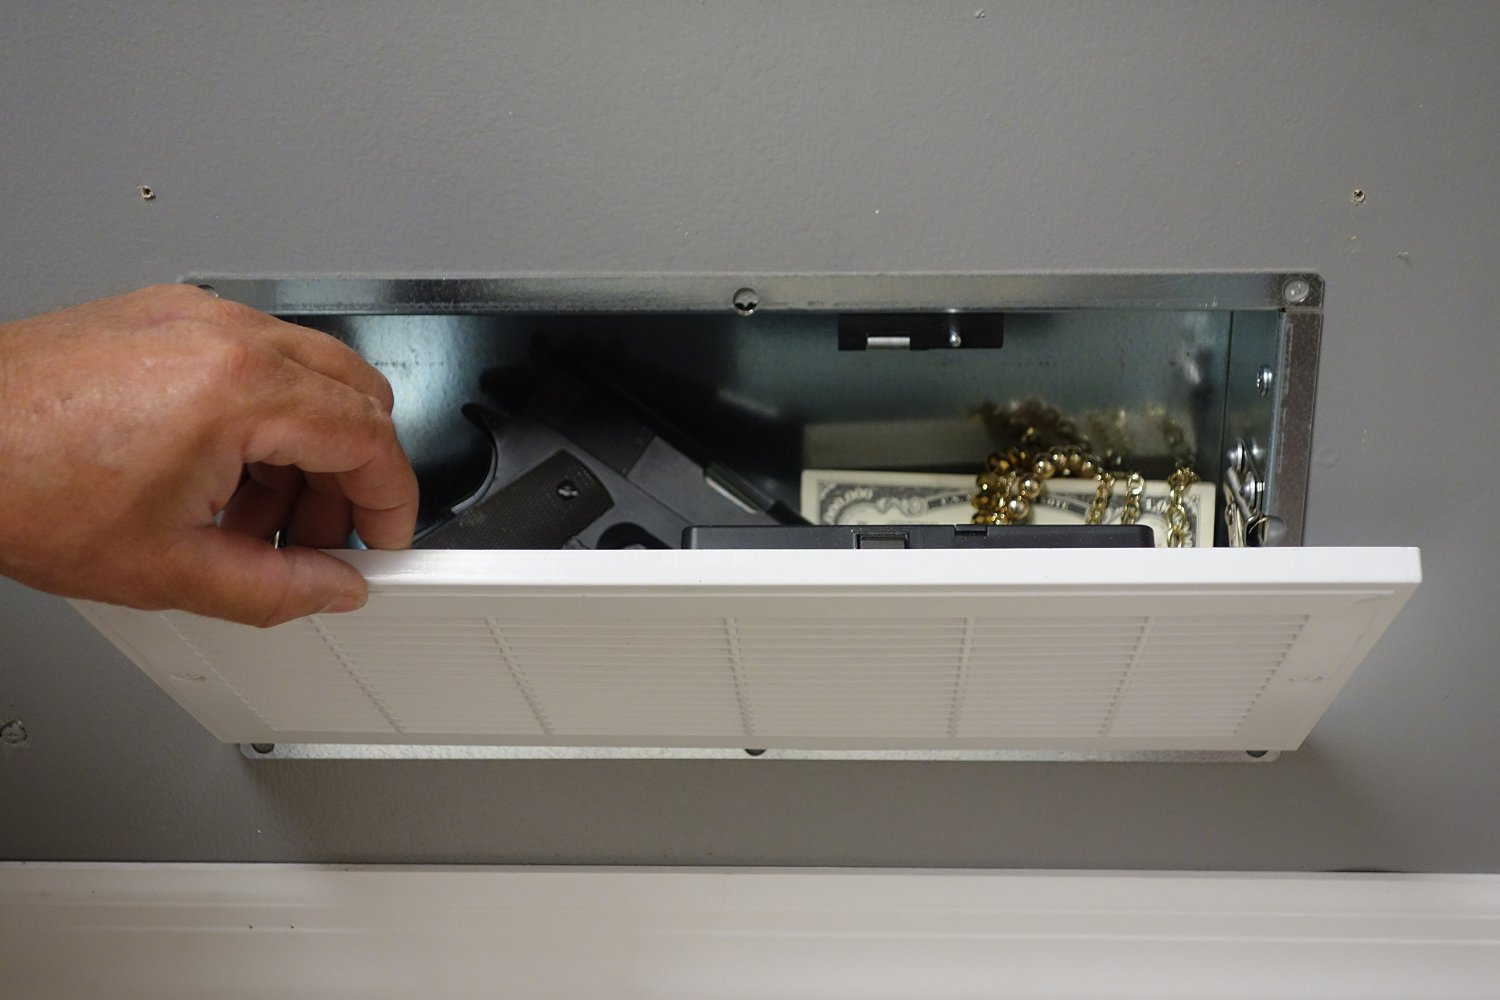 image showing pistols, jewelry and cash in the Quick Vent RFID Safe